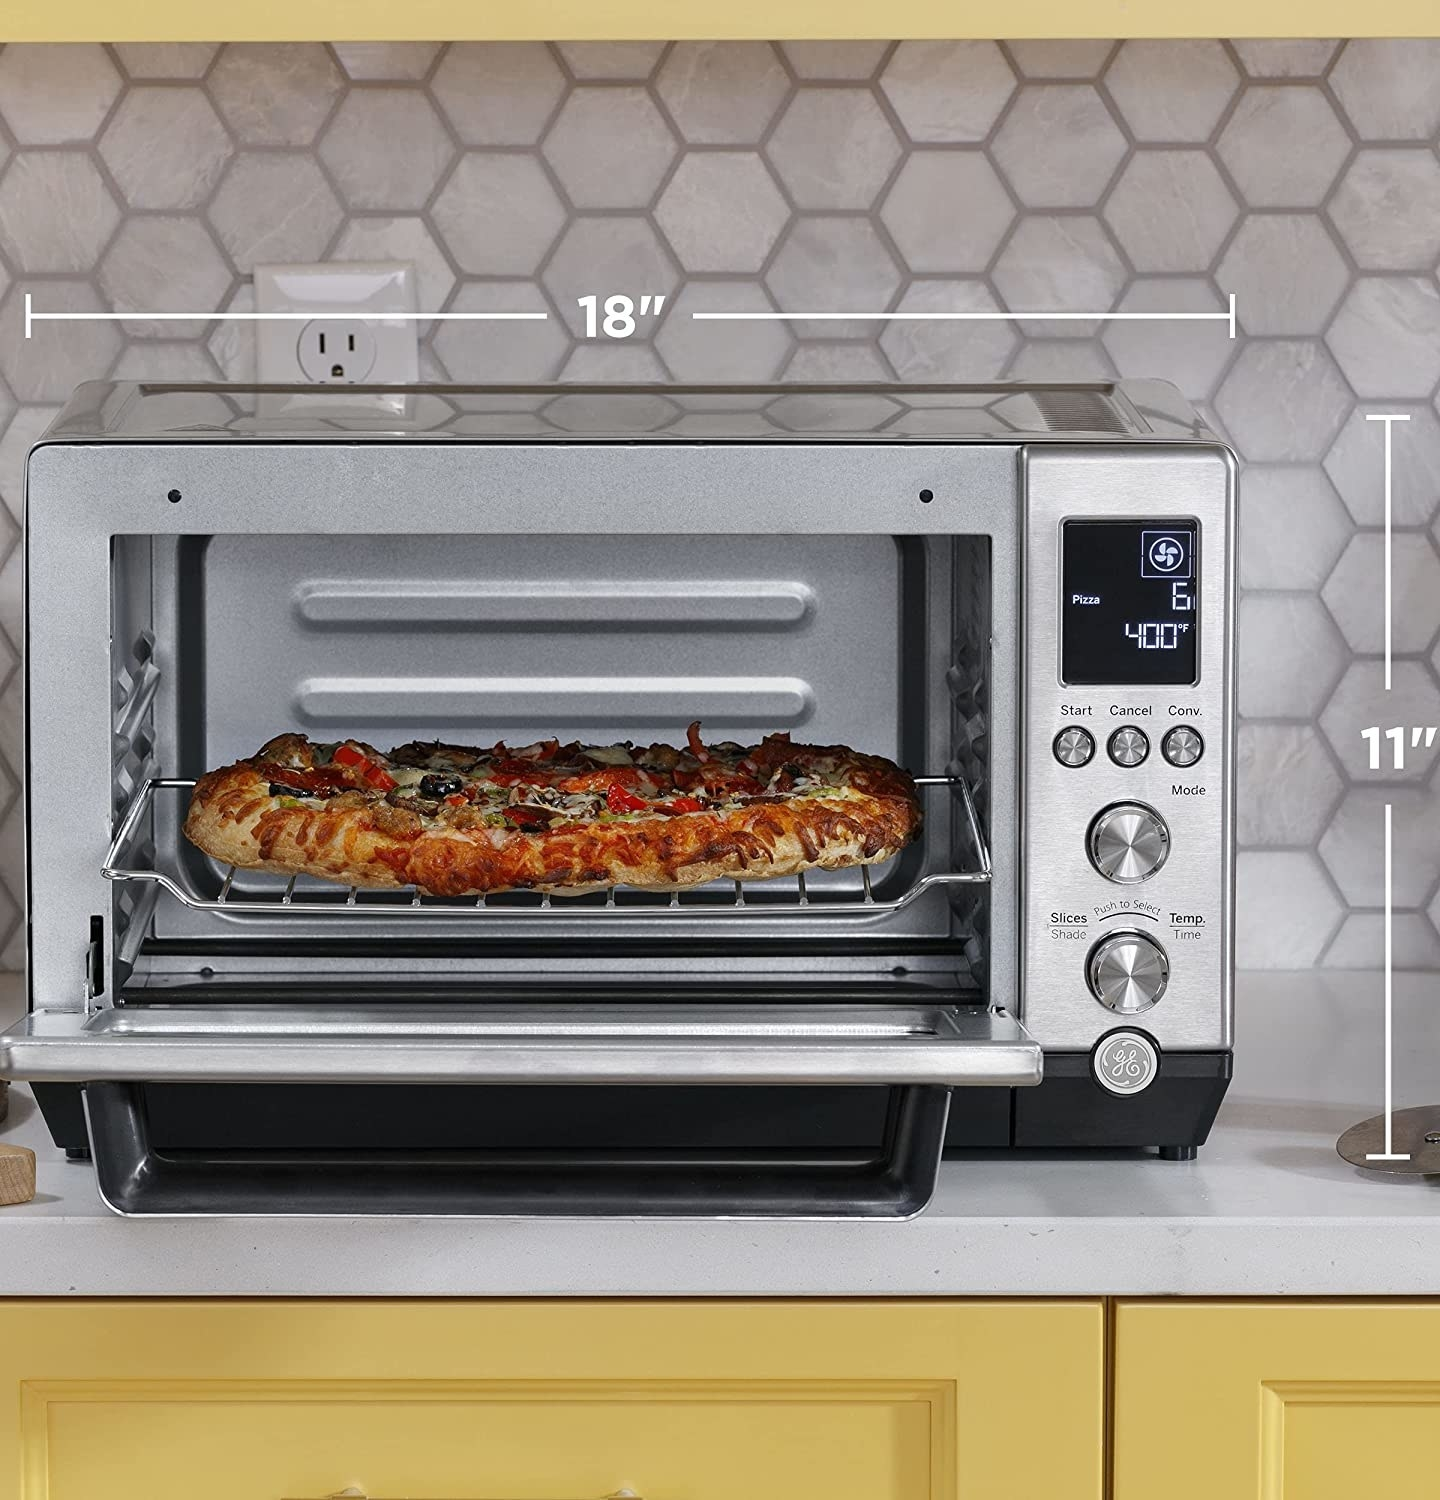 The stainless steel toaster oven with a drip tray and rack